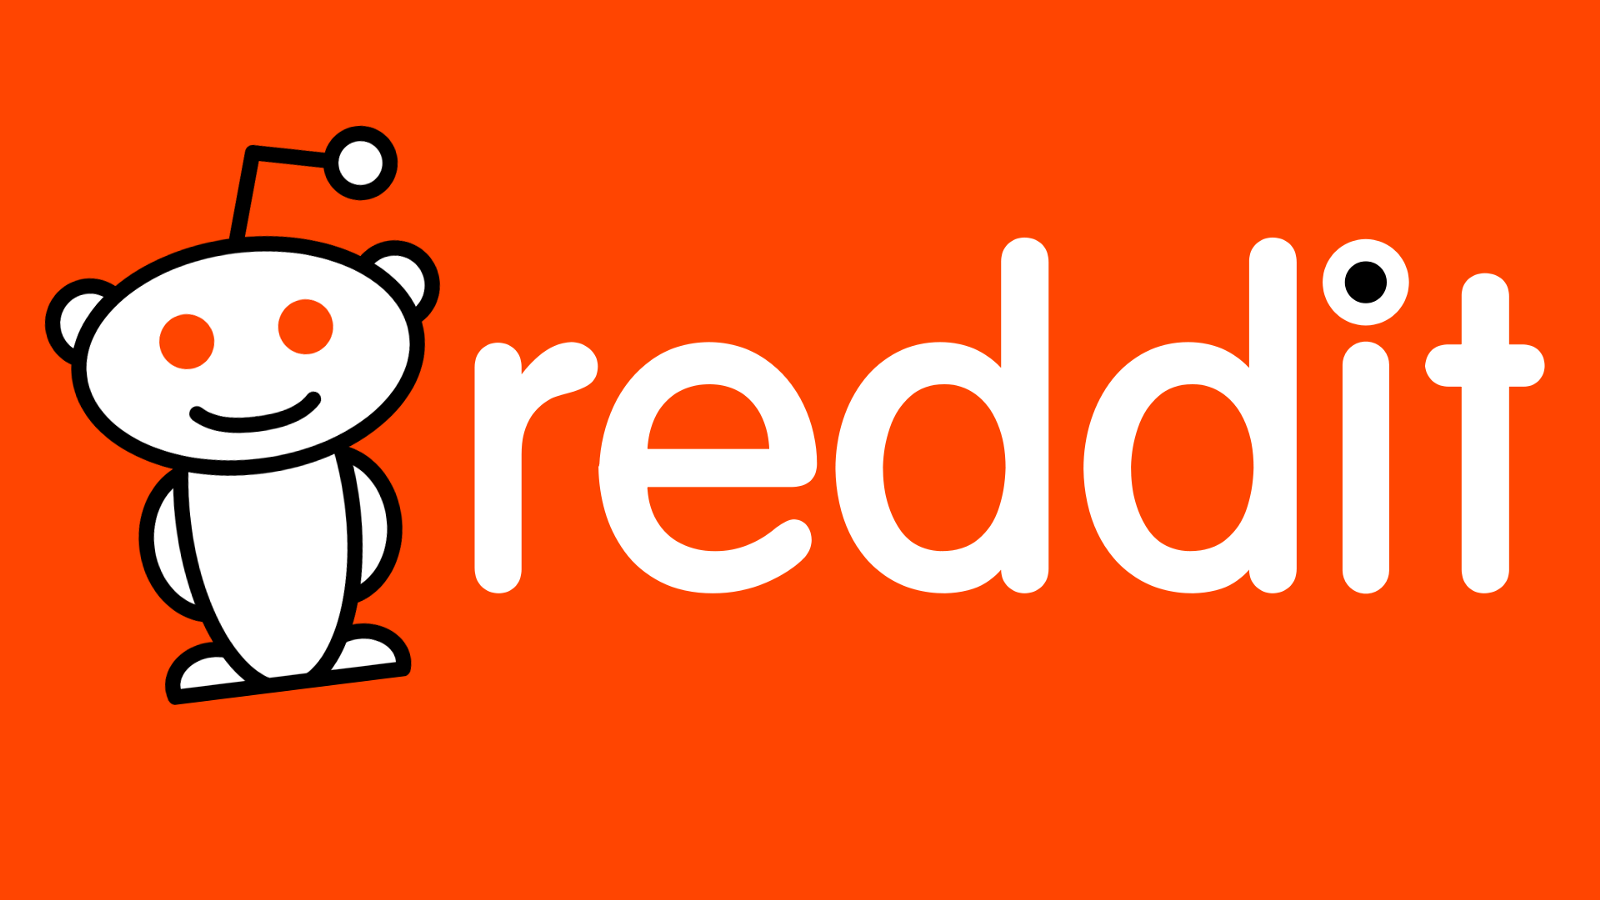 Reddit users are the least valuable of any social network